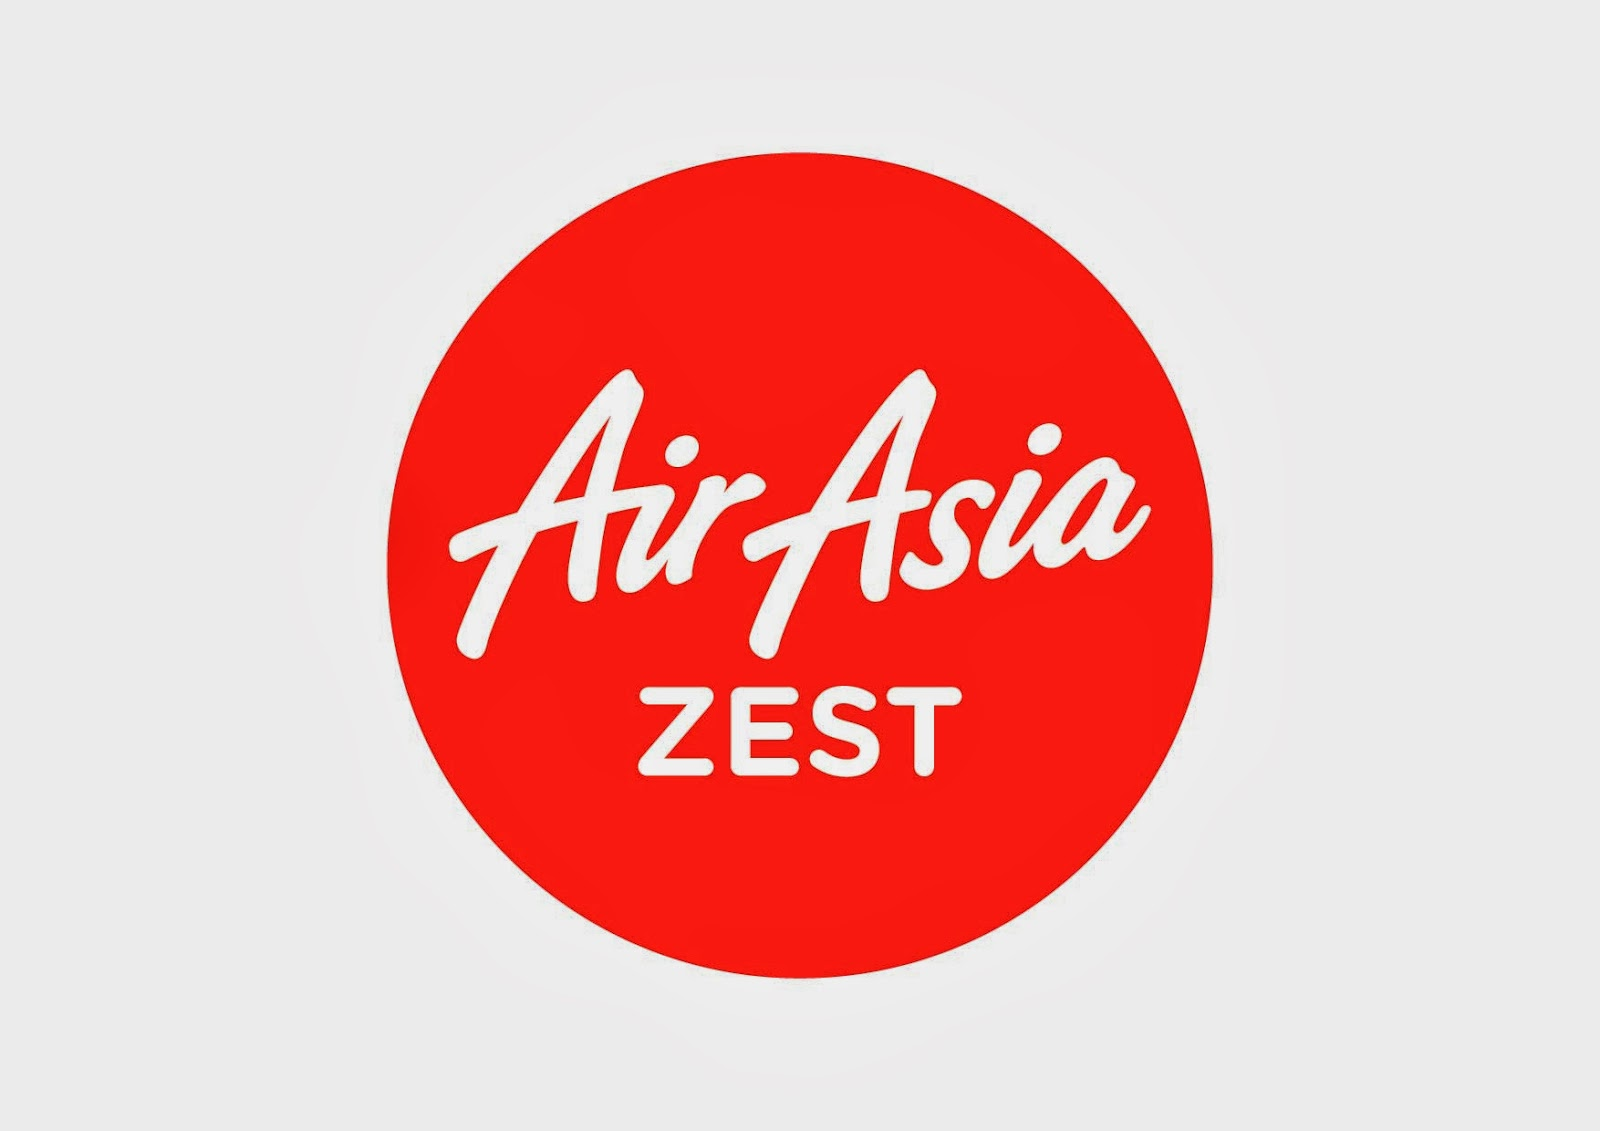 strength of zest airways Airasia zest airlines online booking at rehlatae we offer cheapest airfares and flat 20% off for airasia zest airlines to all destinations - book online now.